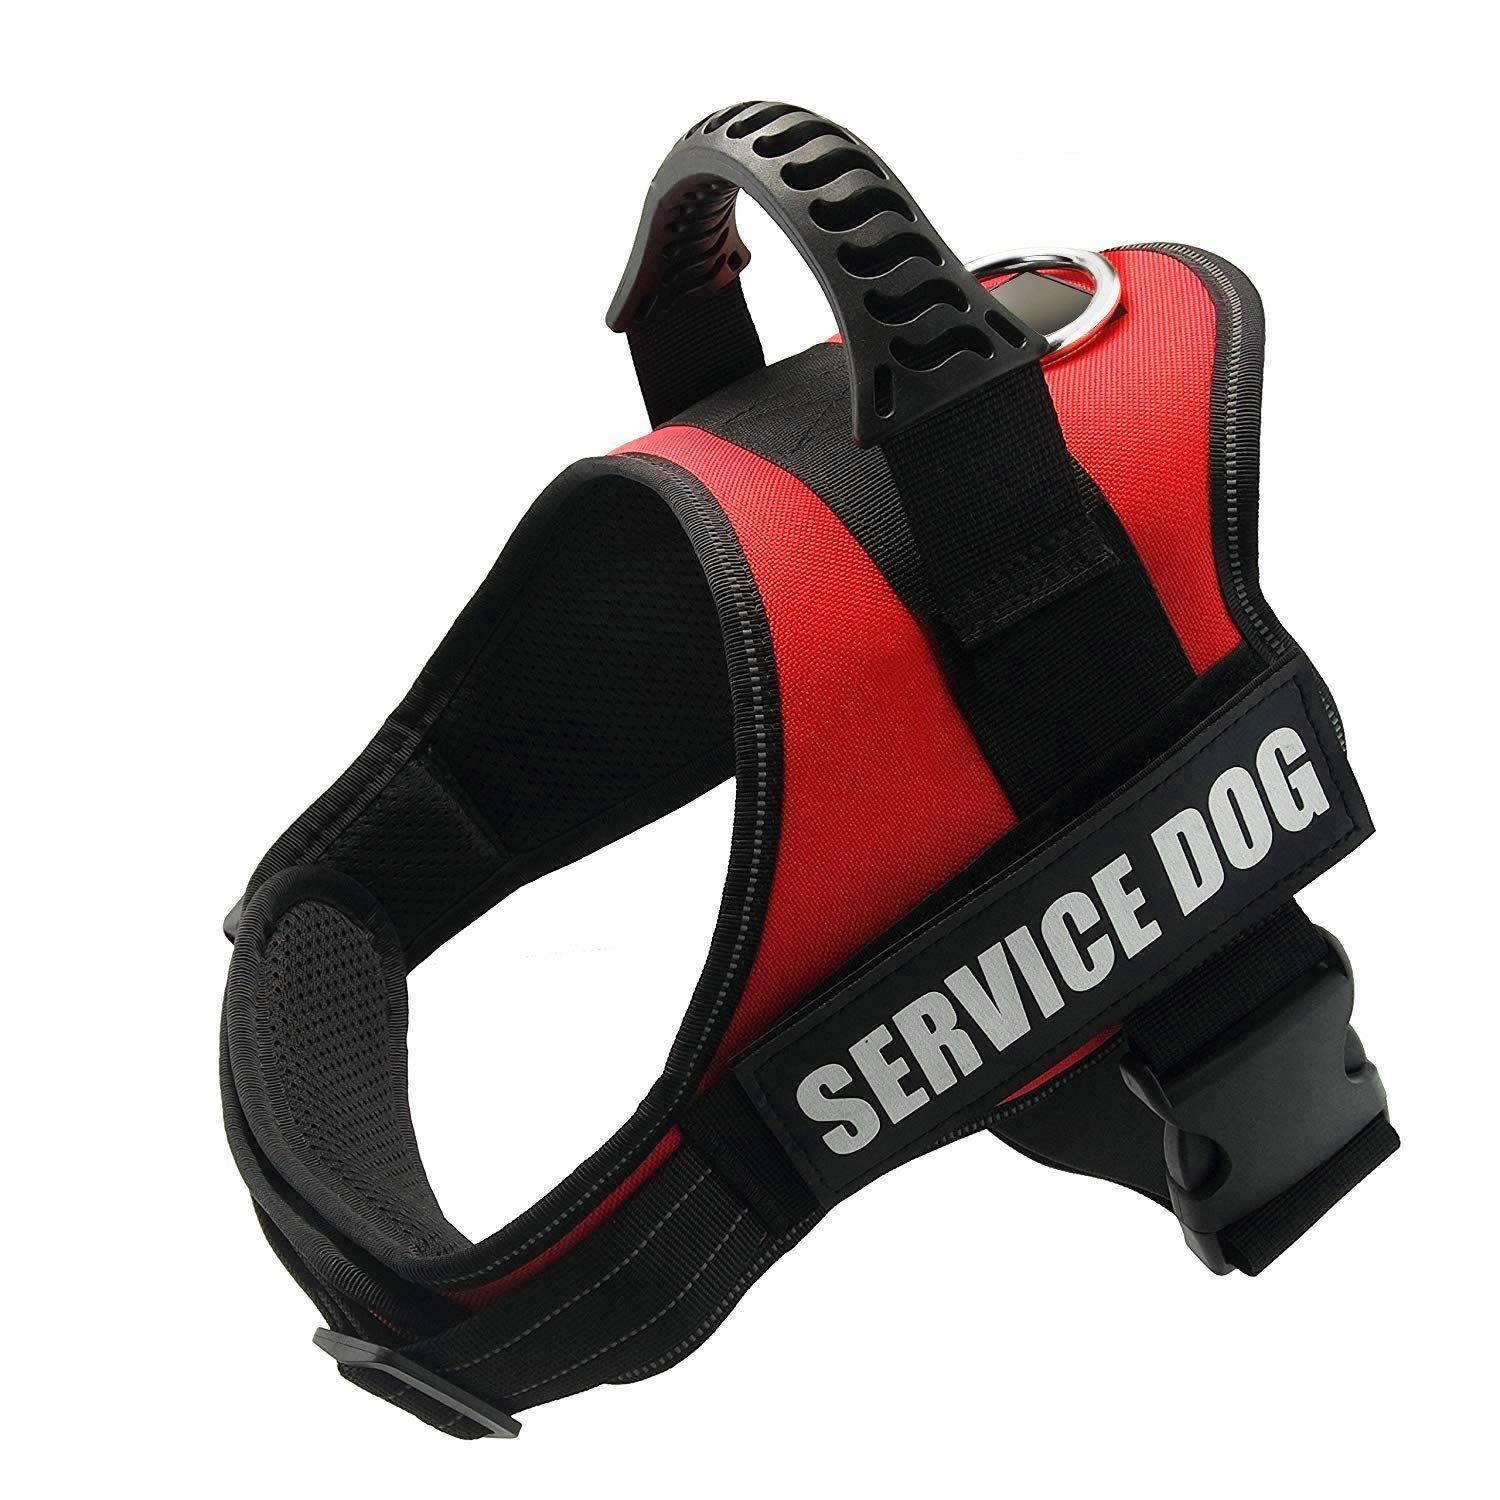 Fayogoo Dog Vest Harness For Service Dogs Comfortable Padded Dog